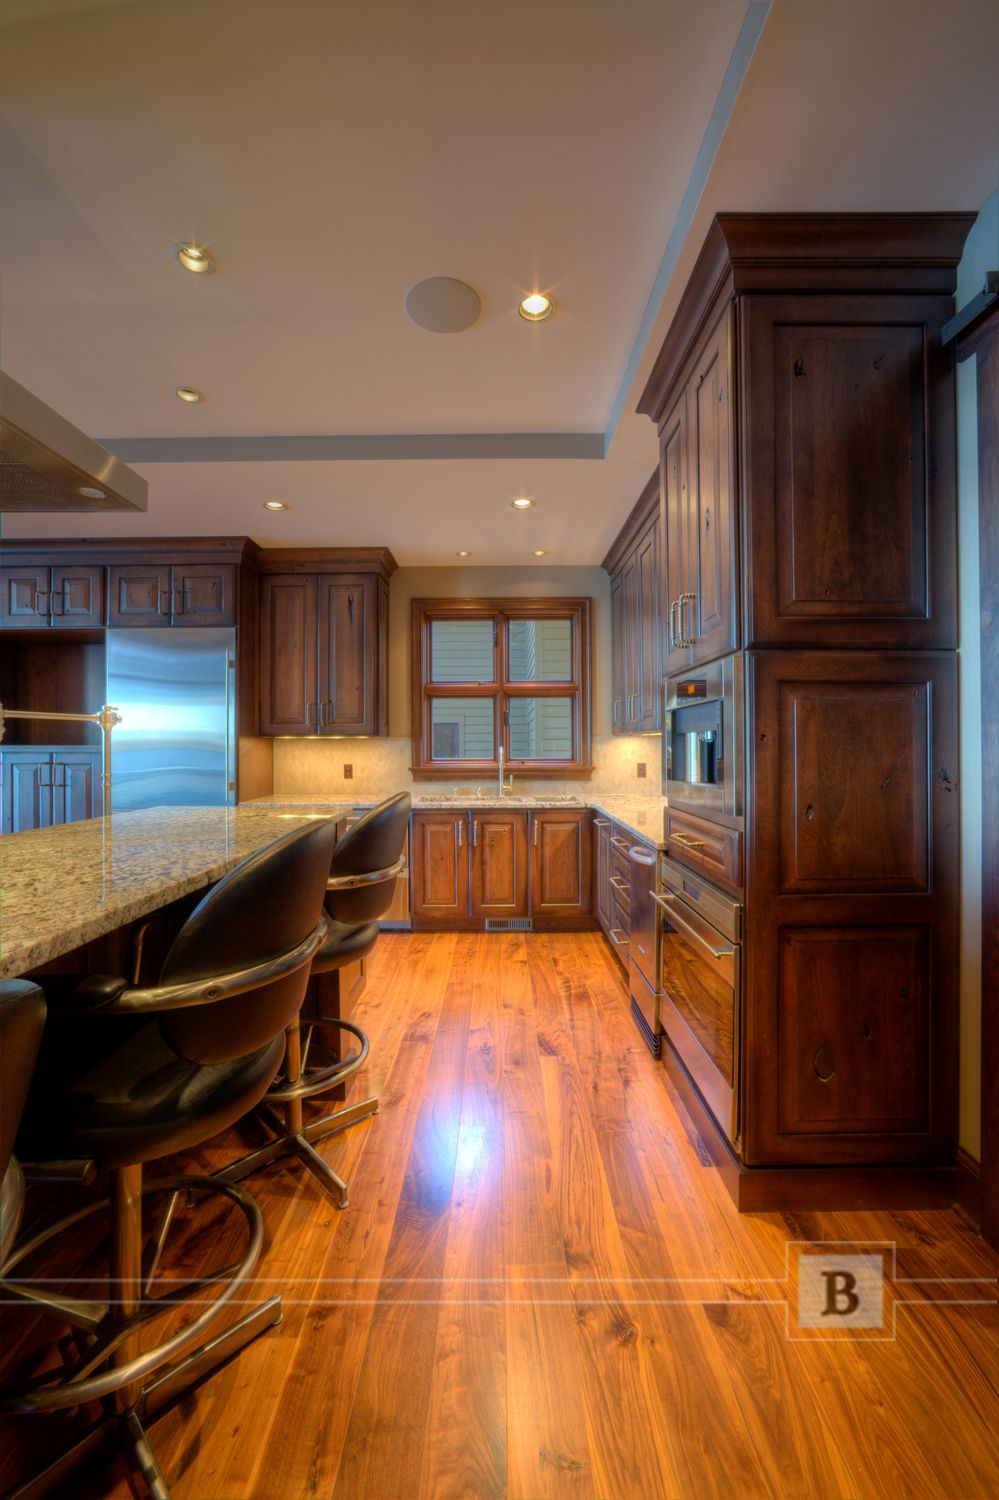 Traditional cabinetry in medium wood tones. Wood flooring and stainless steel appliances.